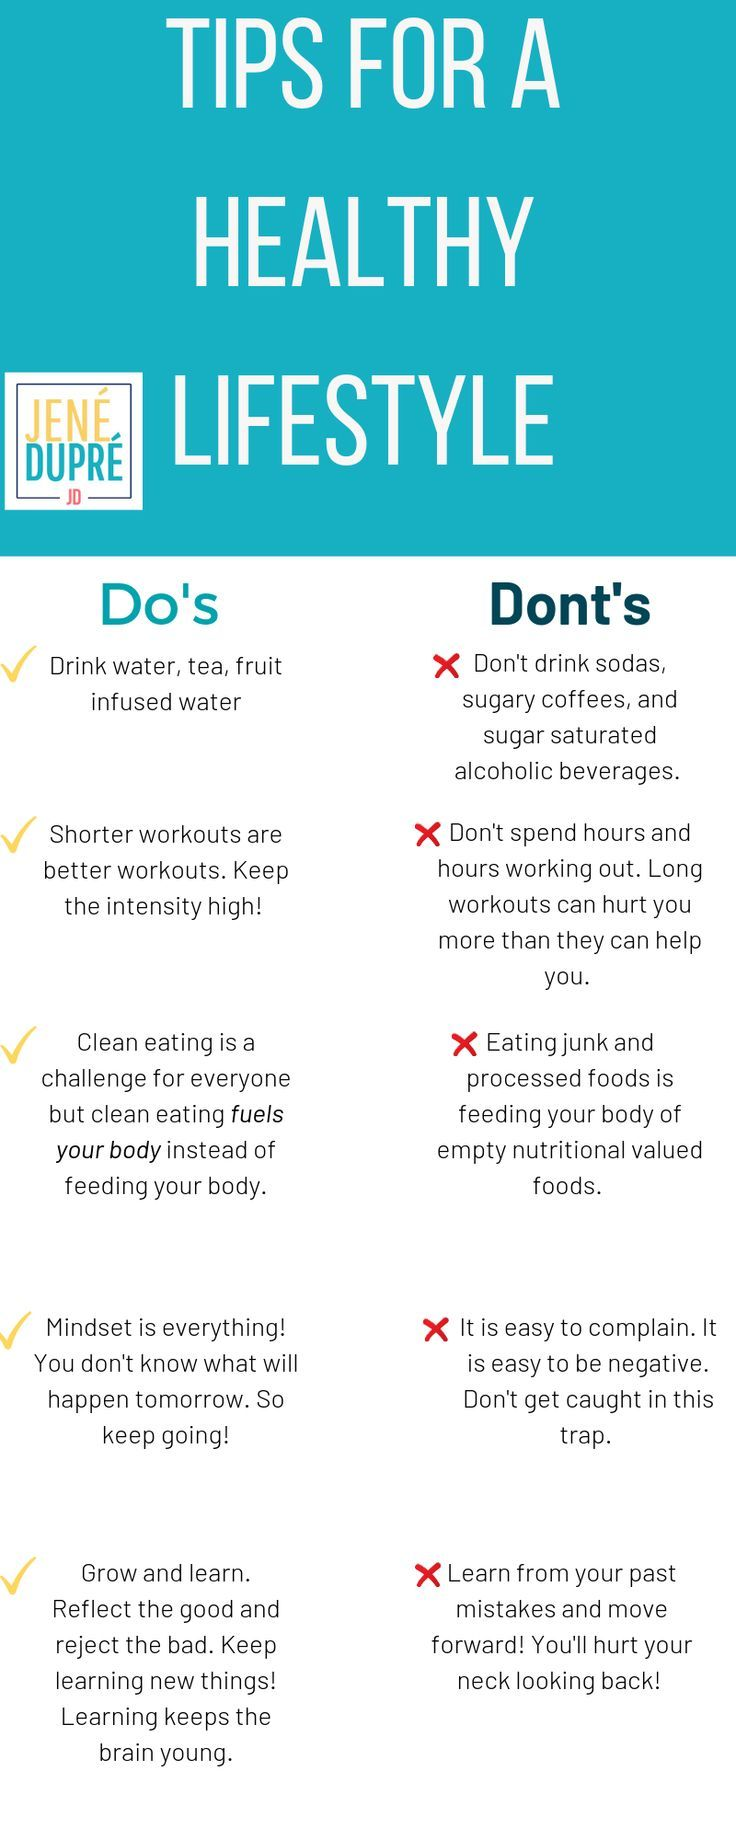 10 Tips for a Healthy Lifestyle! You can see the rest of the tips and have a FREE resource!! Start your healthy journey today! #healthandwellness #healthandfitness #exercise #healthylifestyle #healthylifestyles #fitnesstips #healthtips #healthytips